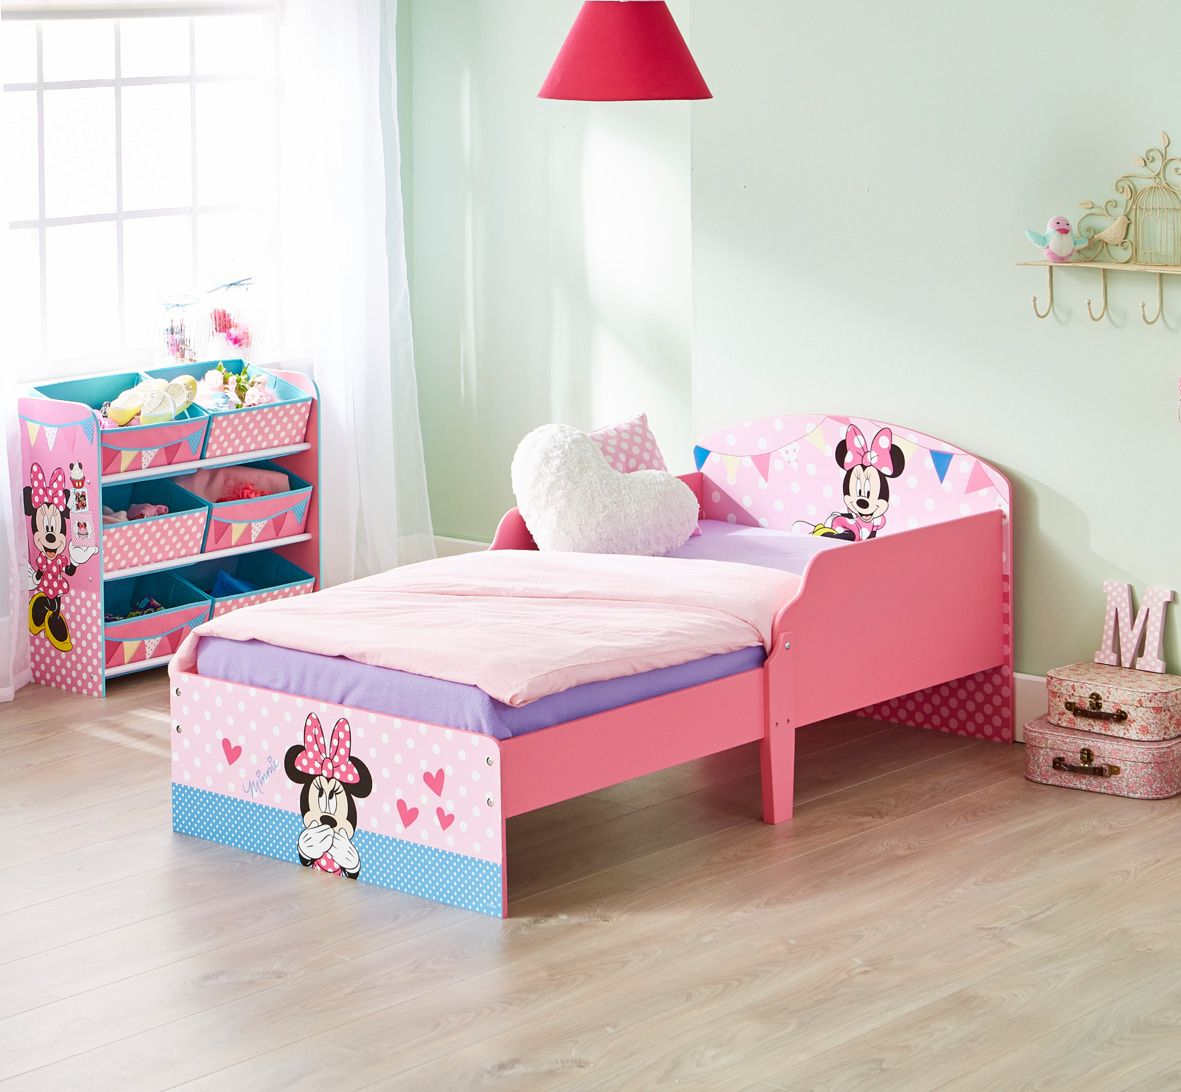 Muebles Disney Cama Infantil De Madera Con Minnie Mouse Disney Ideal